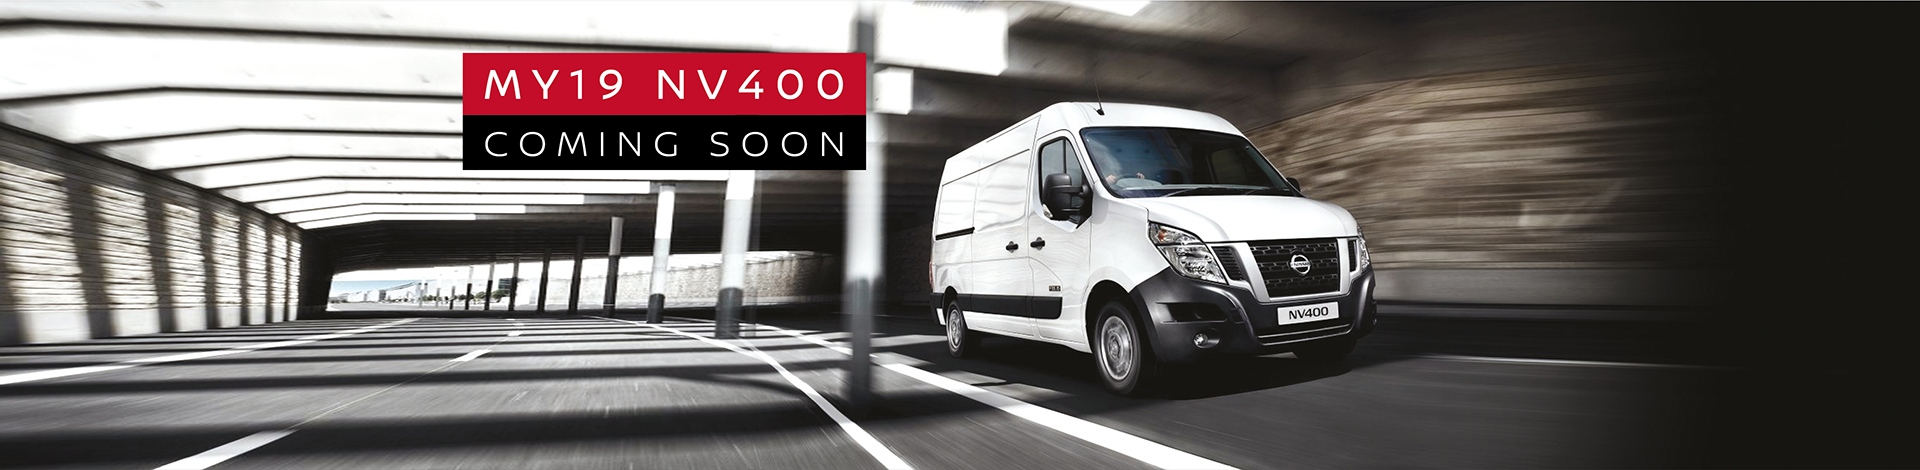 Nissan NV400 Coming Soon